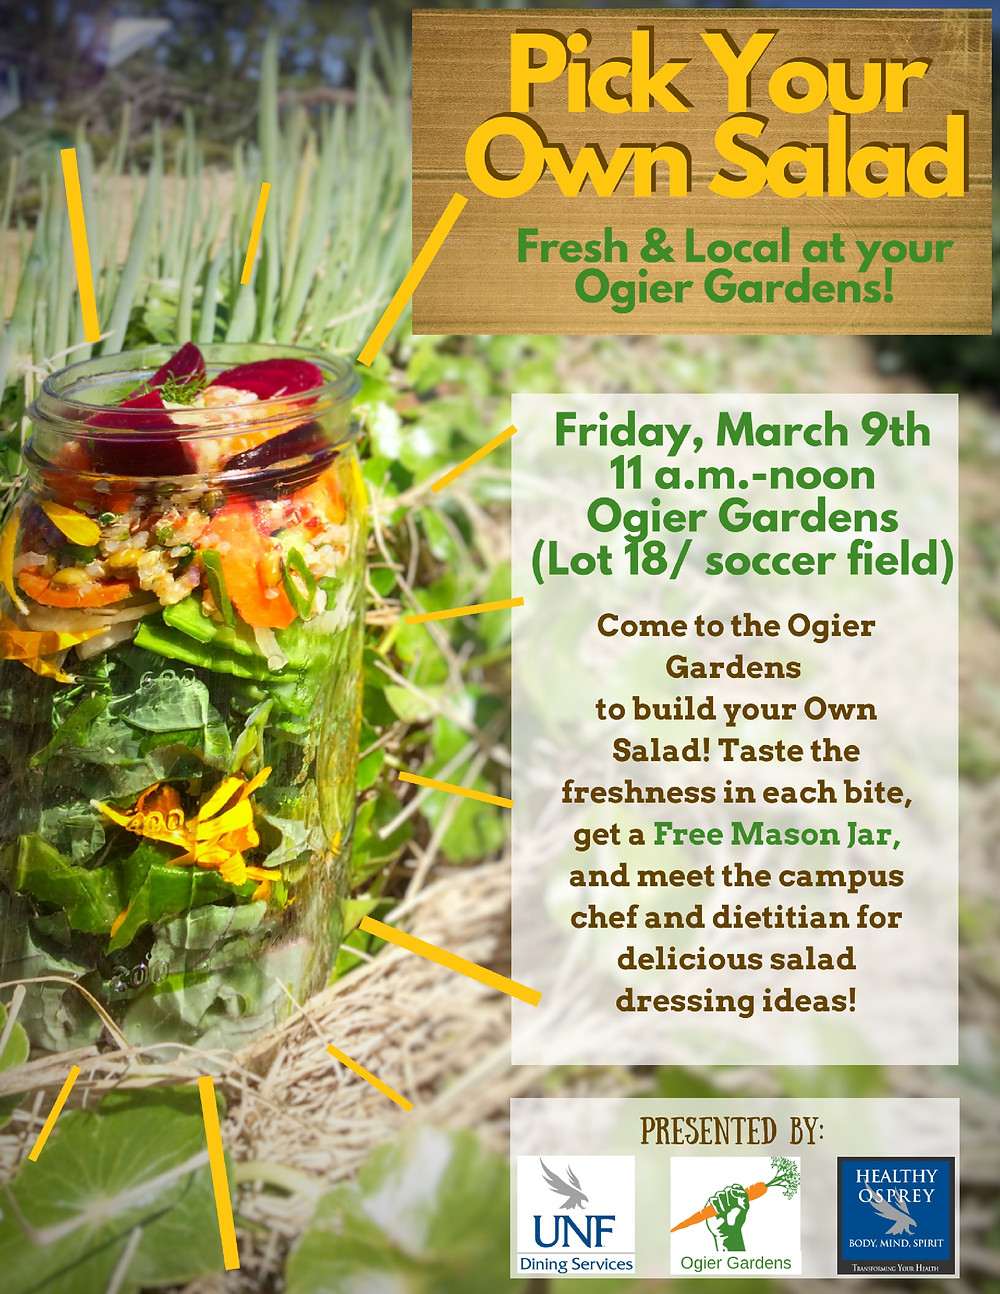 Pick Your Own Salad from the Ogier Gardens poster.